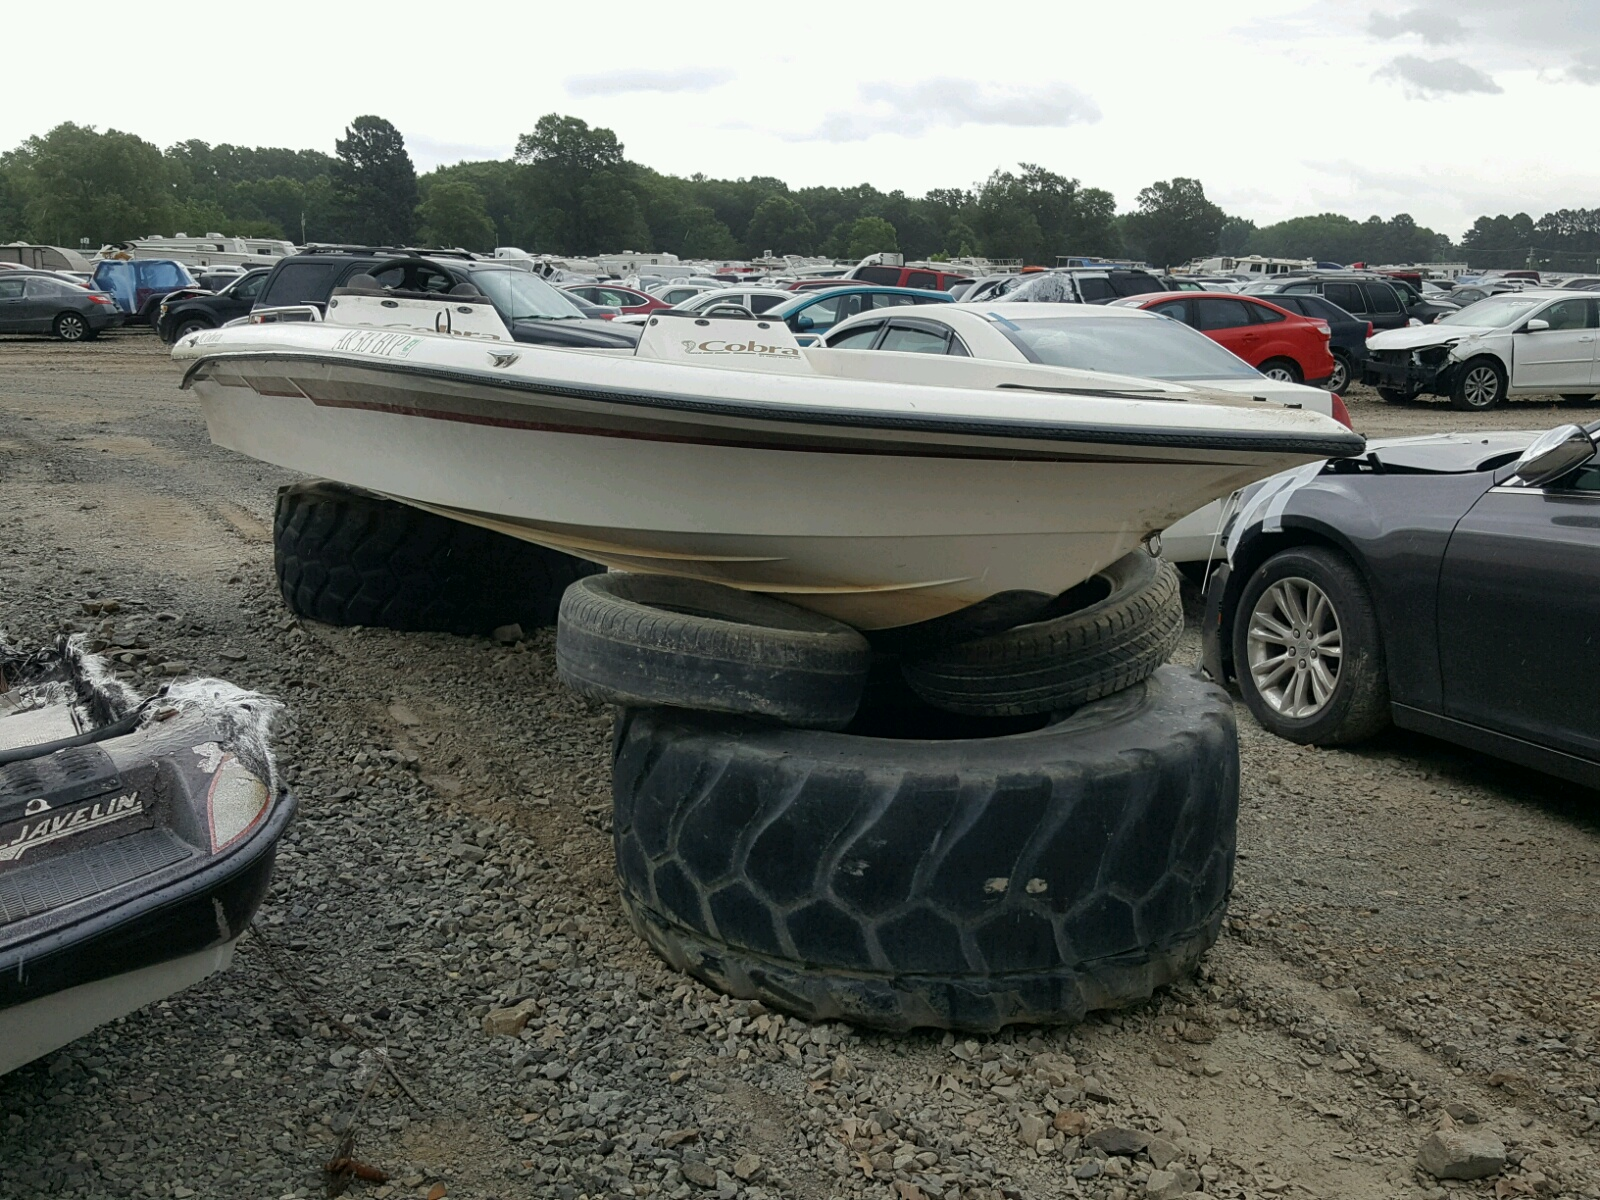 Salvage 1999 Vipr MARINE LOT for sale